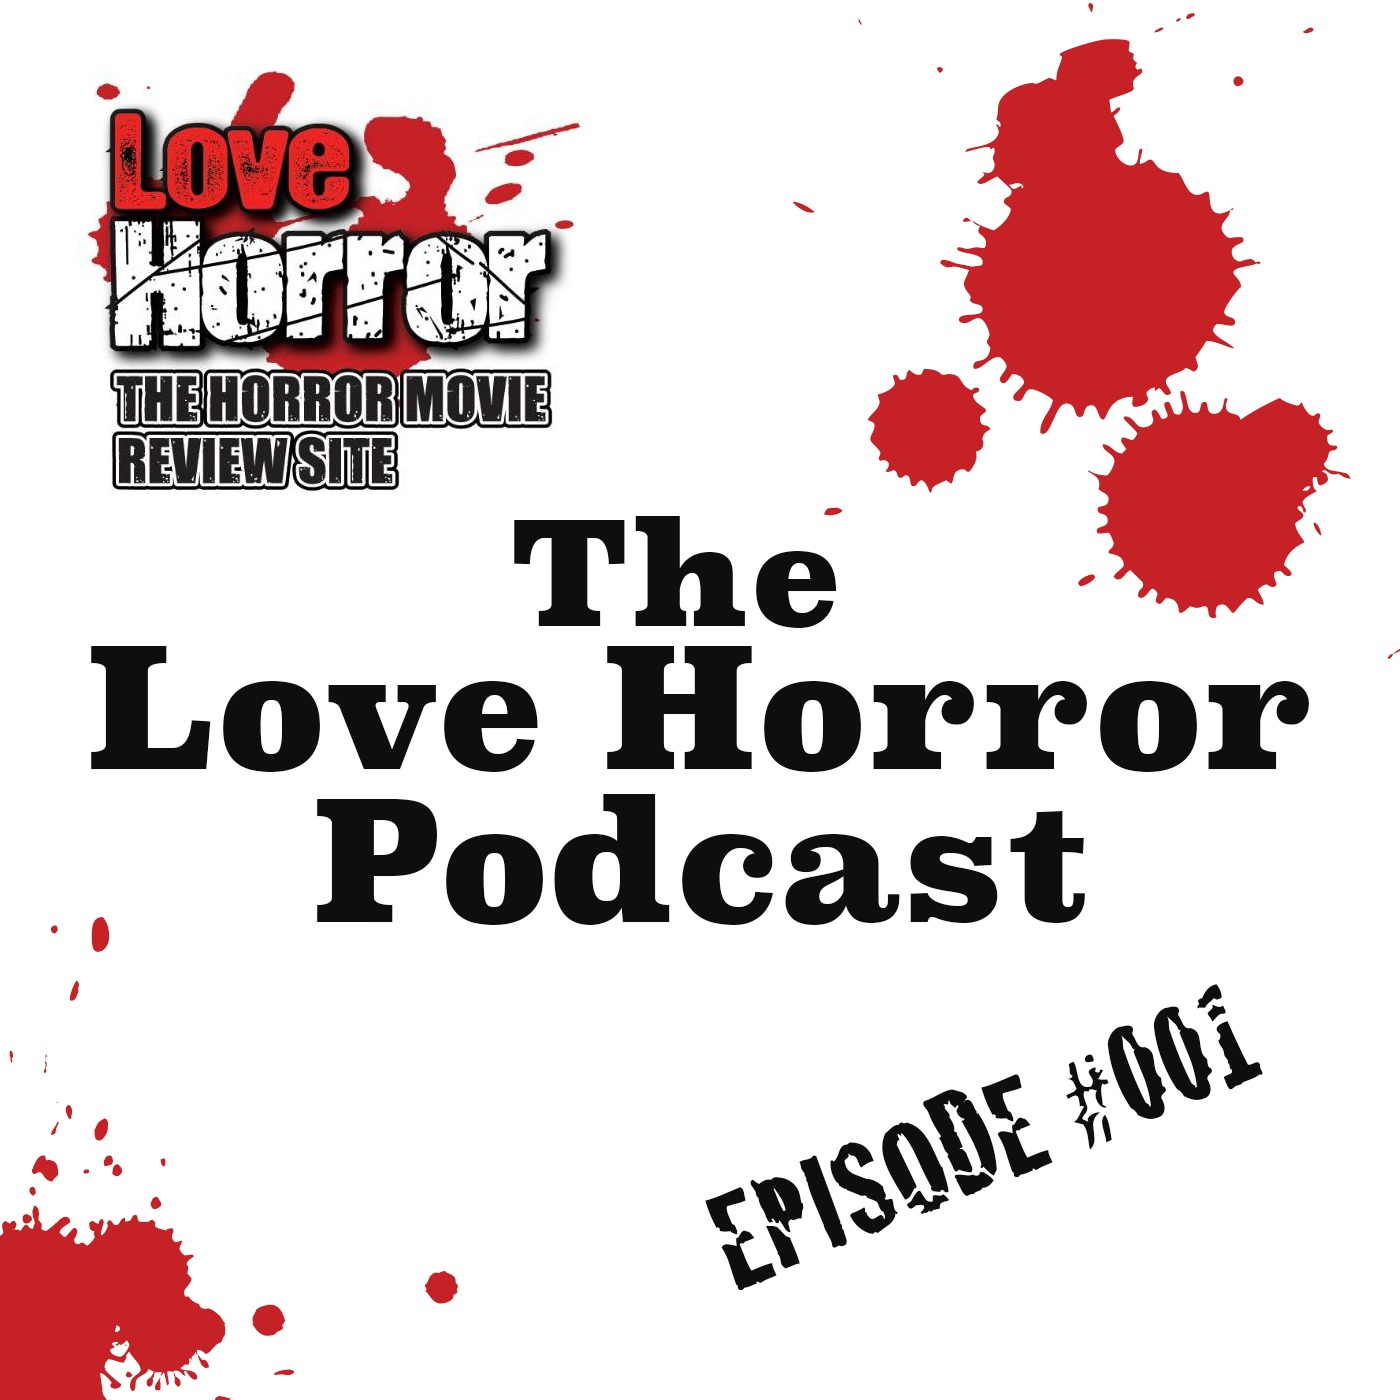 Love Horror Podcast